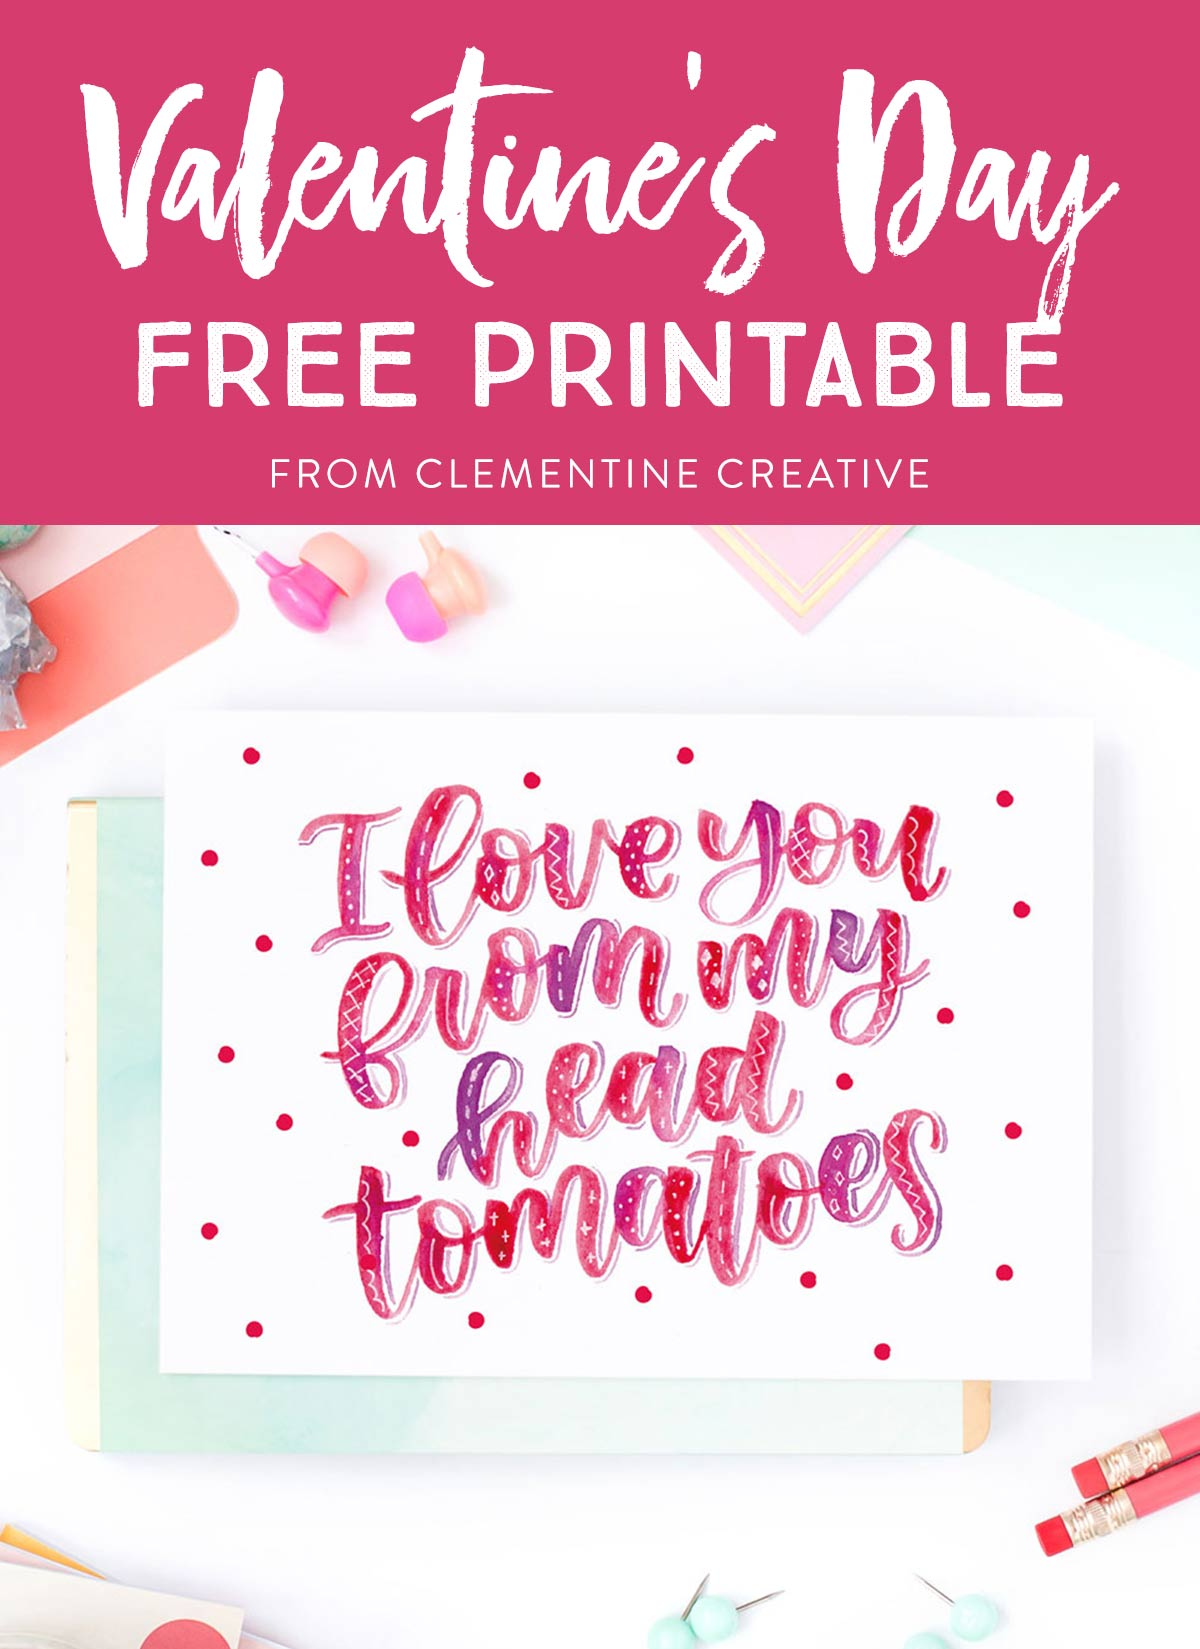 image relating to Valentines Printable Free identify Totally free Printable Hand Lettered Valentines Working day Card with Punny